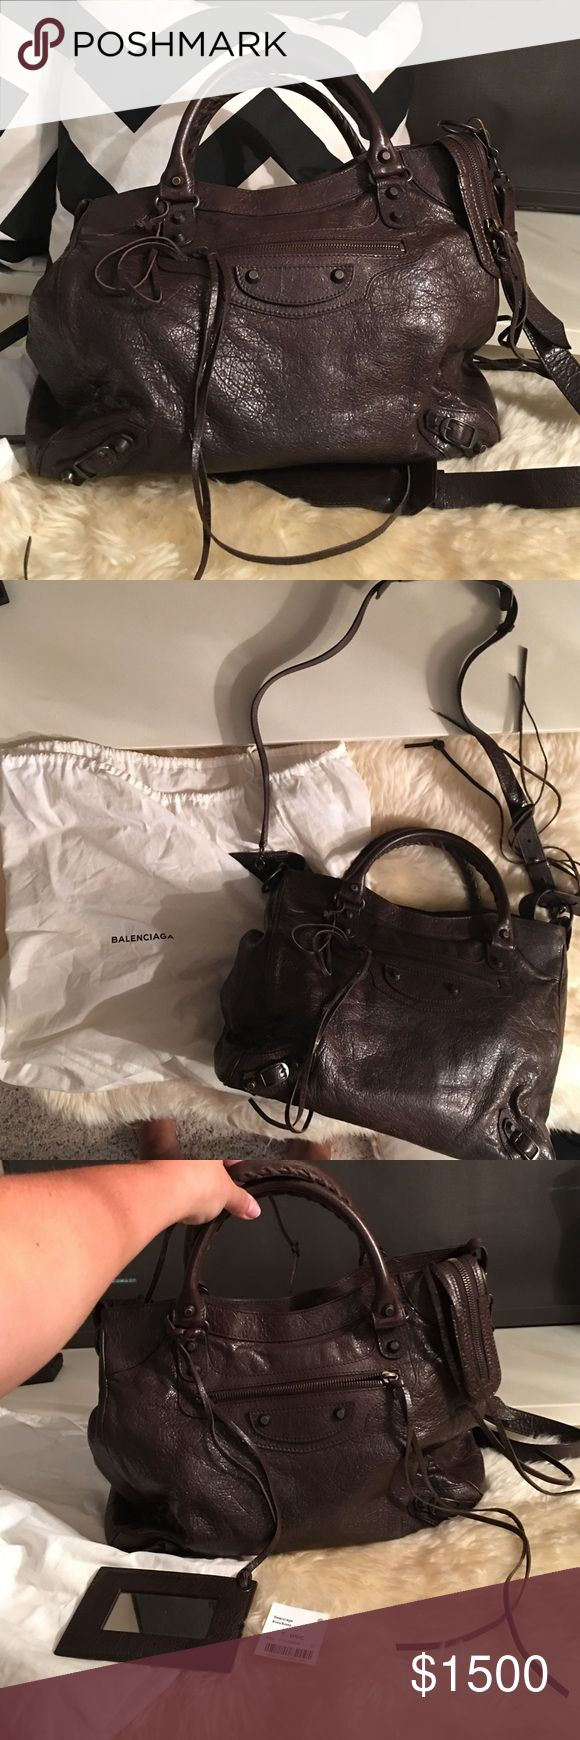 NWT Chocolate Balenciaga Velo Bag Purchased in 2014 and never before worn. Dark brown chocolate leather with matching hardware. Balenciaga Bags Shoulder Bags